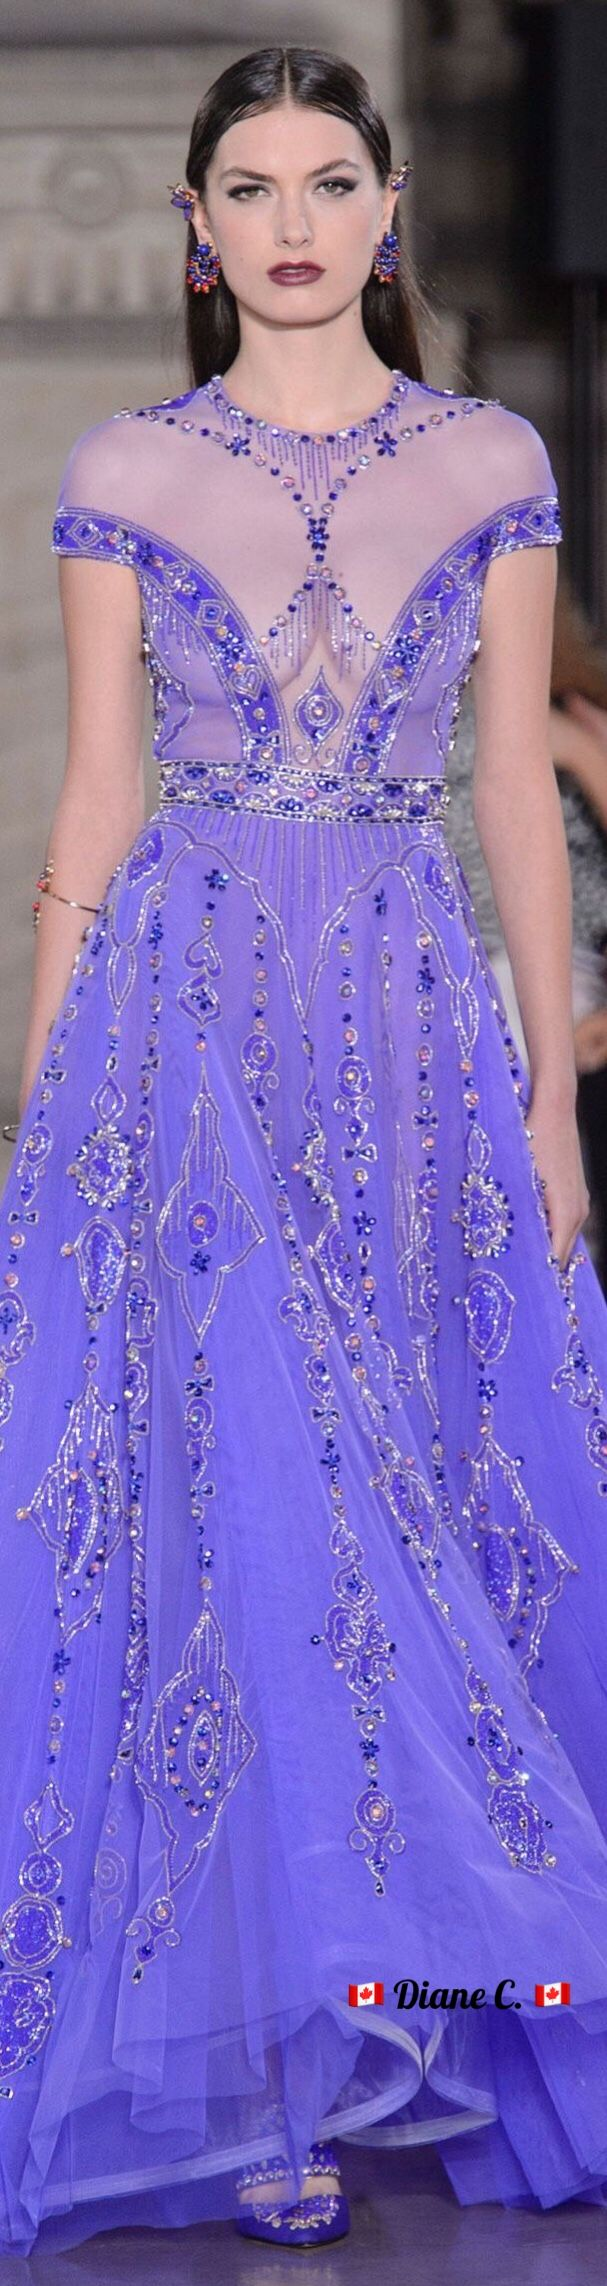 Fall 2017 Haute Couture Georges Hobeika | bella | Pinterest ...